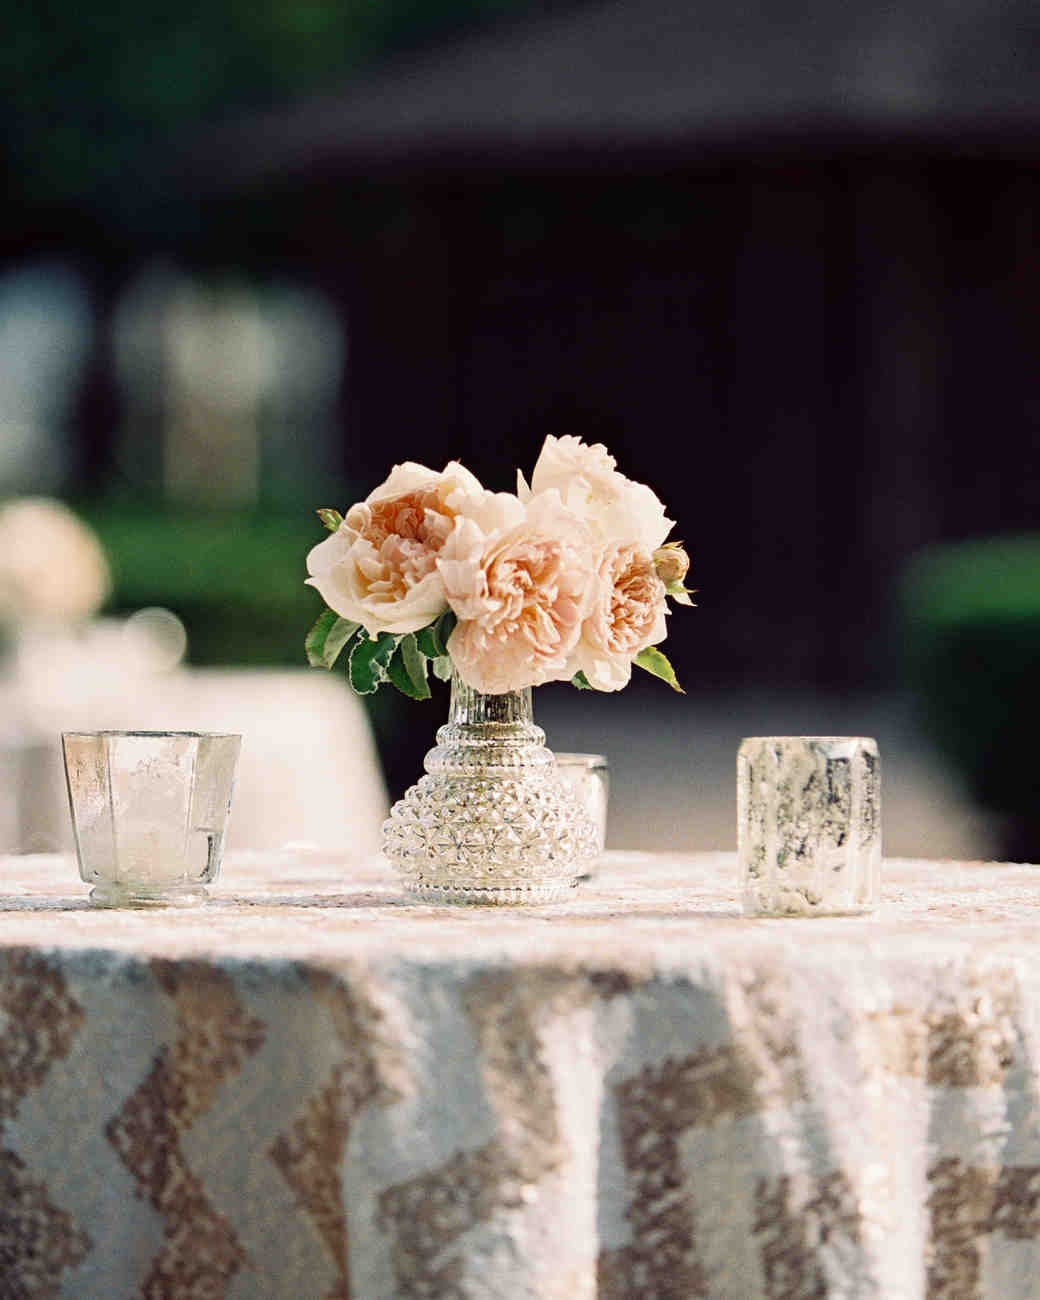 Elegant Wedding Centerpieces: 36 Simple Wedding Centerpieces